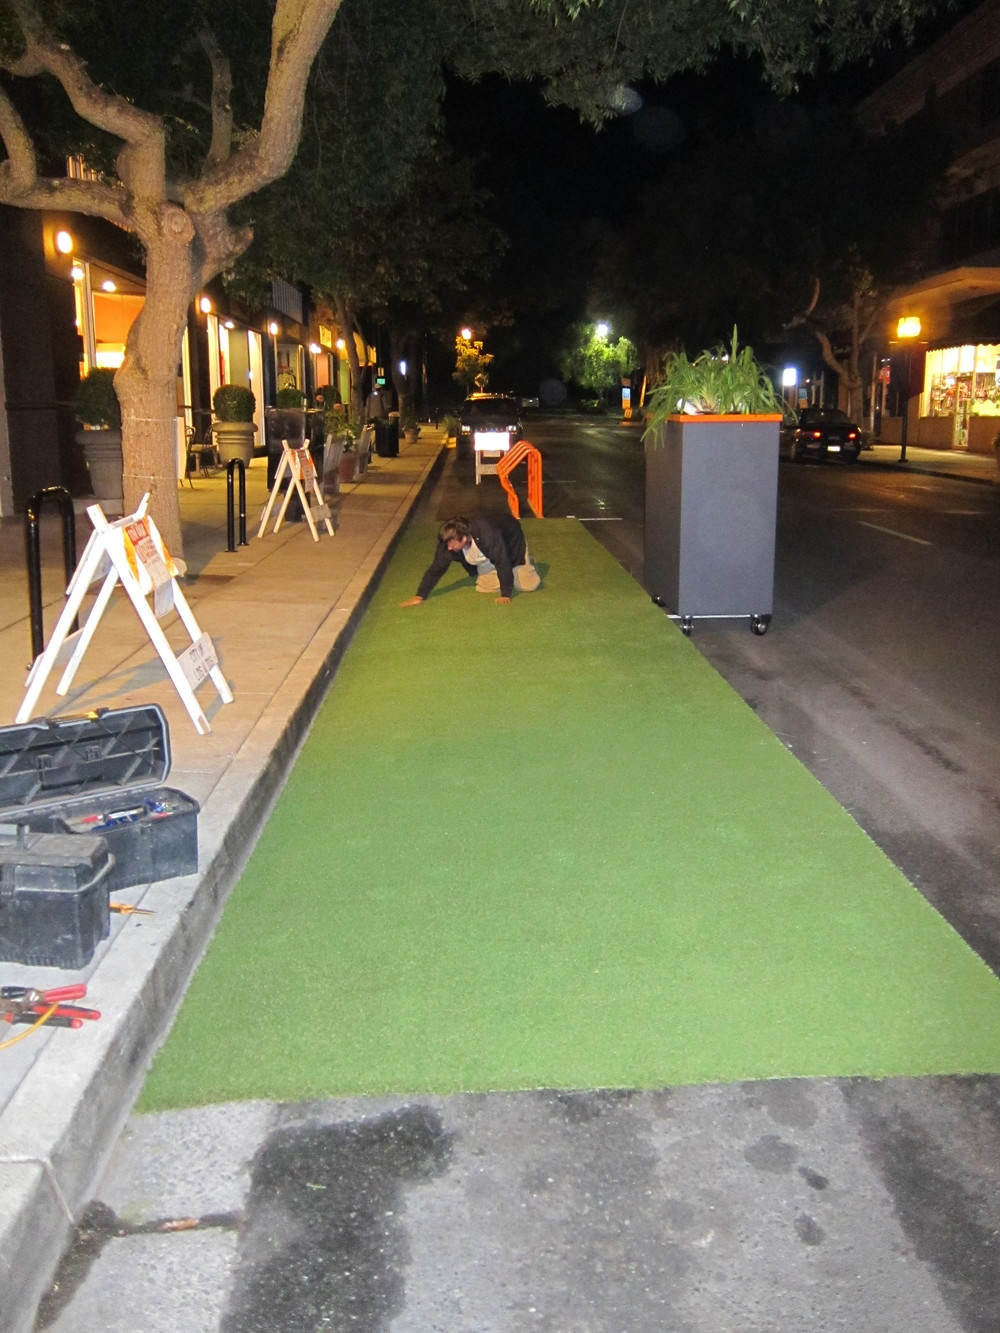 5PARKing Day setup_turf install 445am.JPG